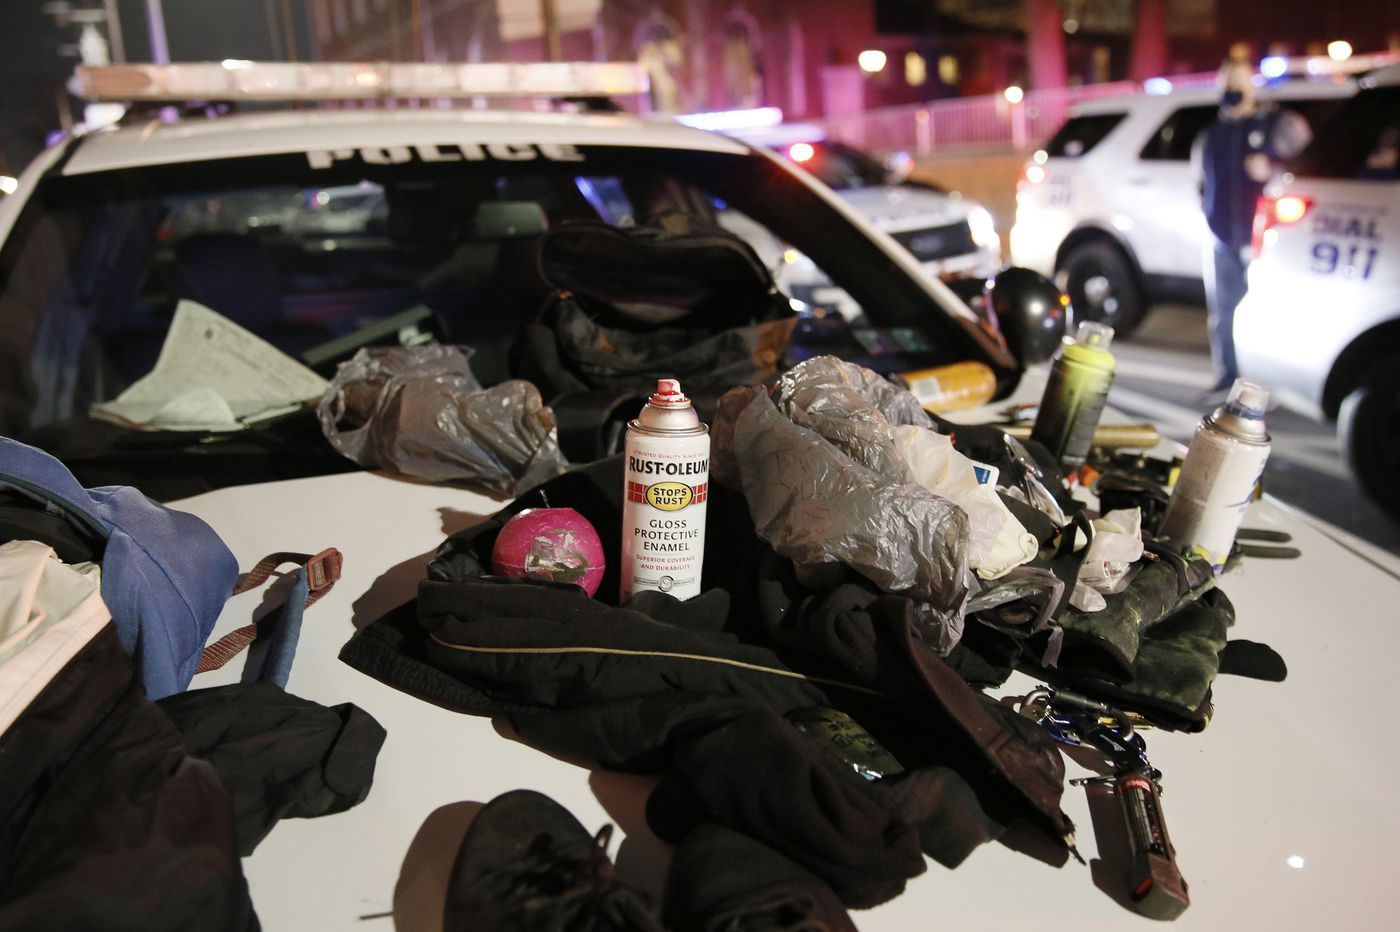 Police ID 7 people arrested in New Year's Eve vandalism of Philly federal building